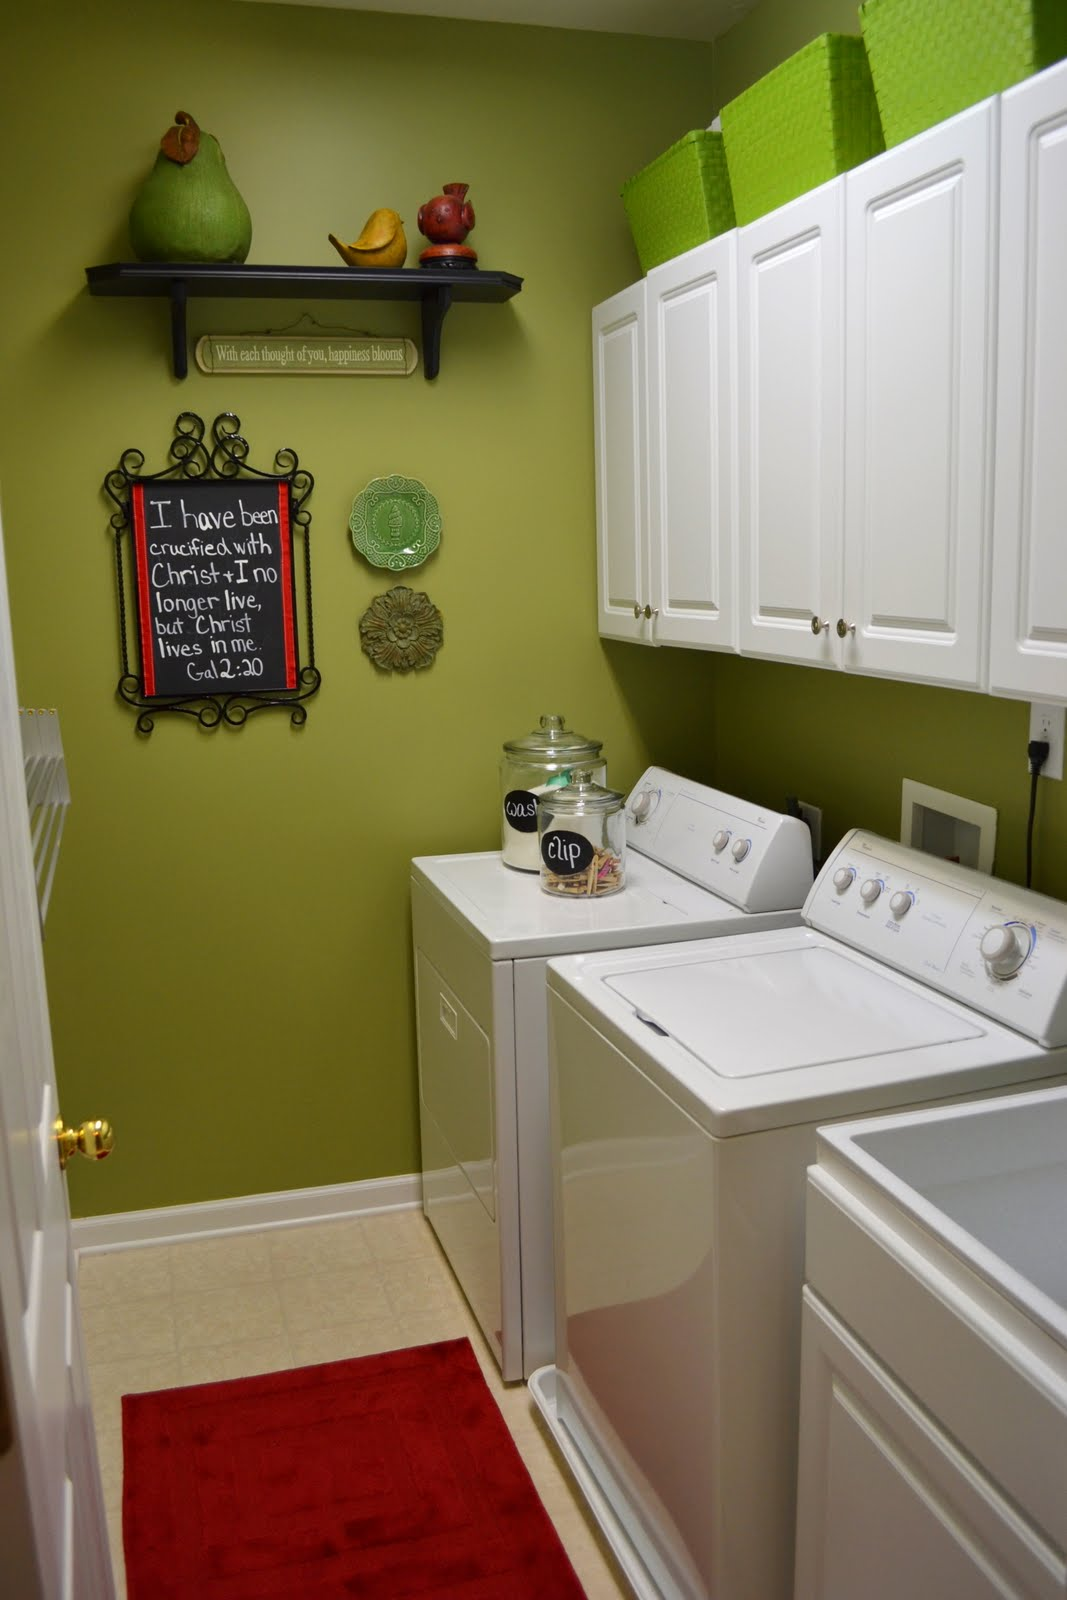 House tour the laundry room worthing court for Painting ideas for small laundry room